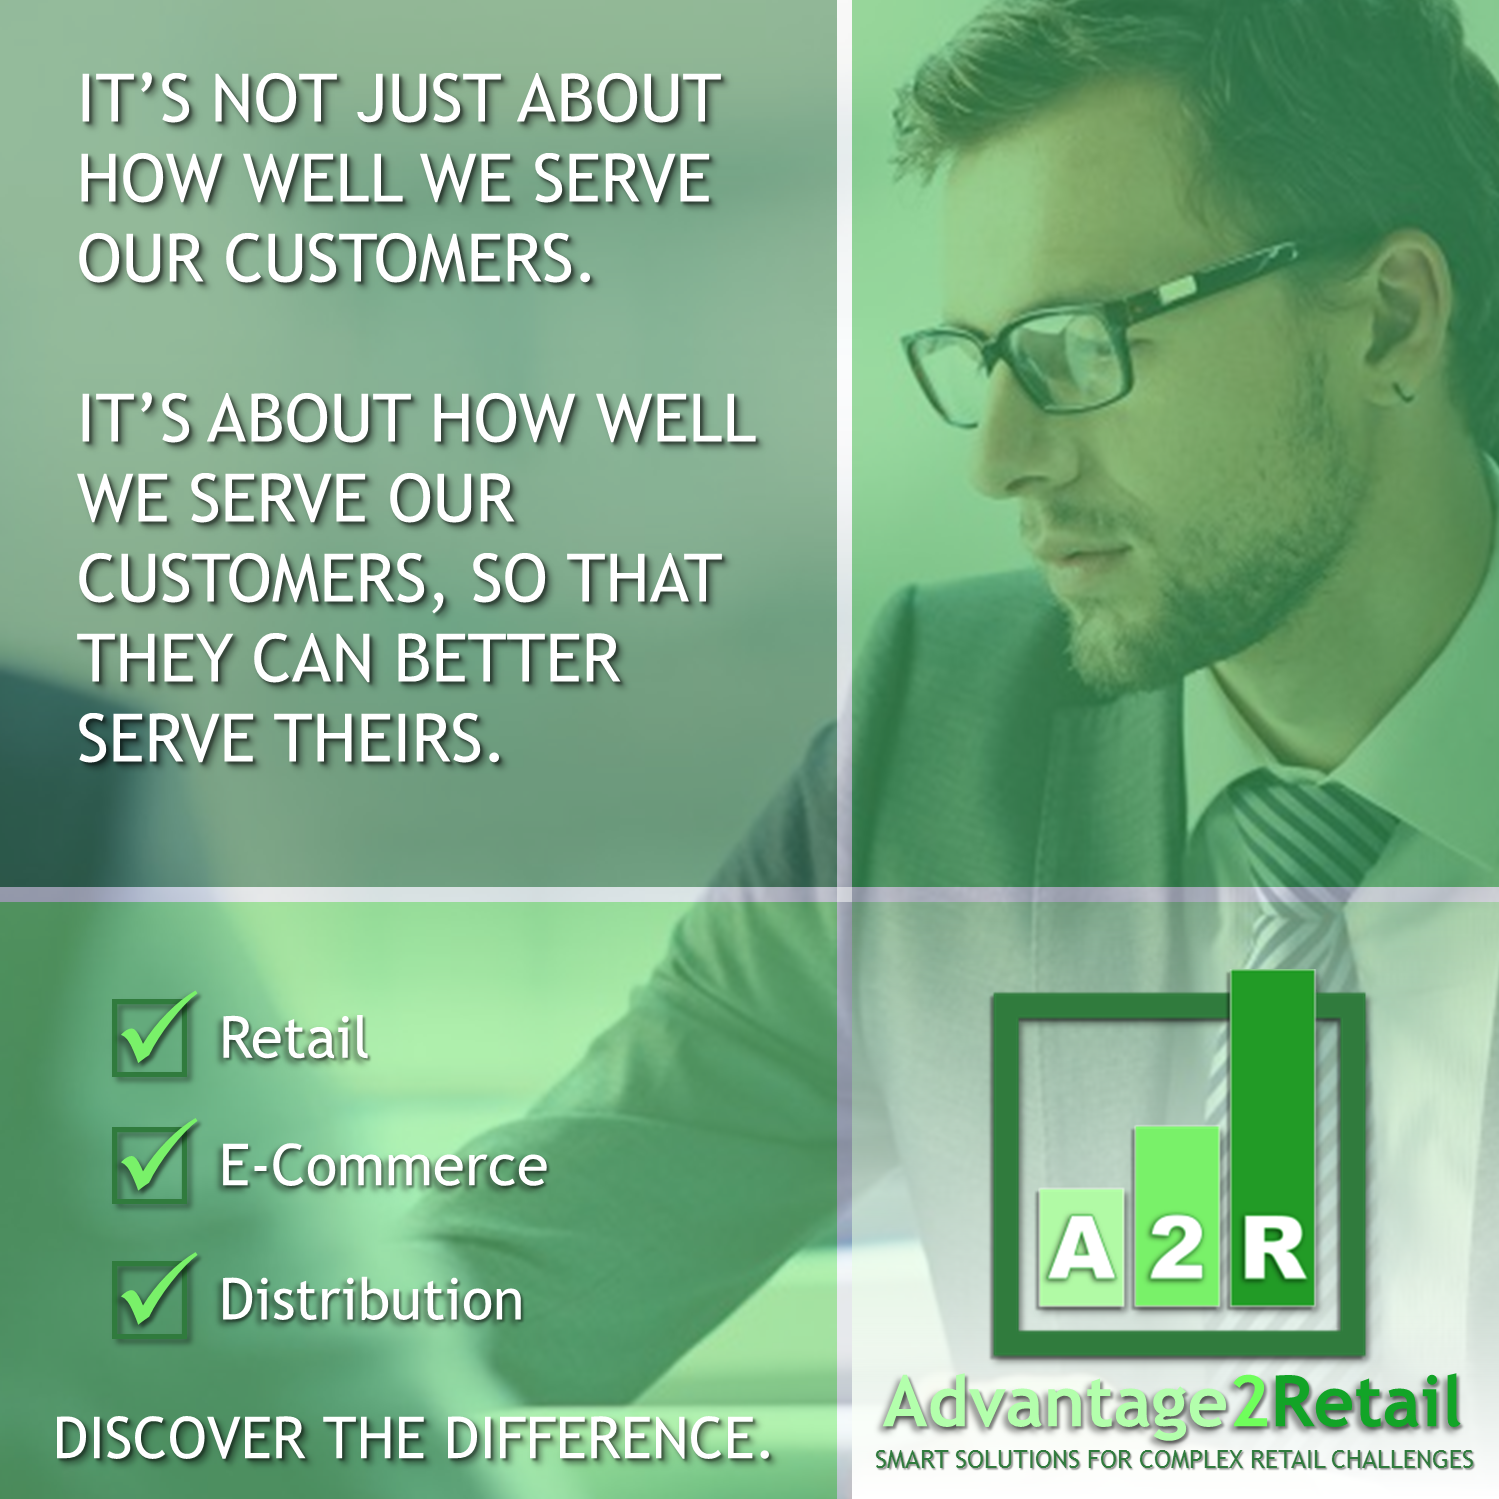 Retail, E-Commerce, Distribution - Discover the Difference - A2R